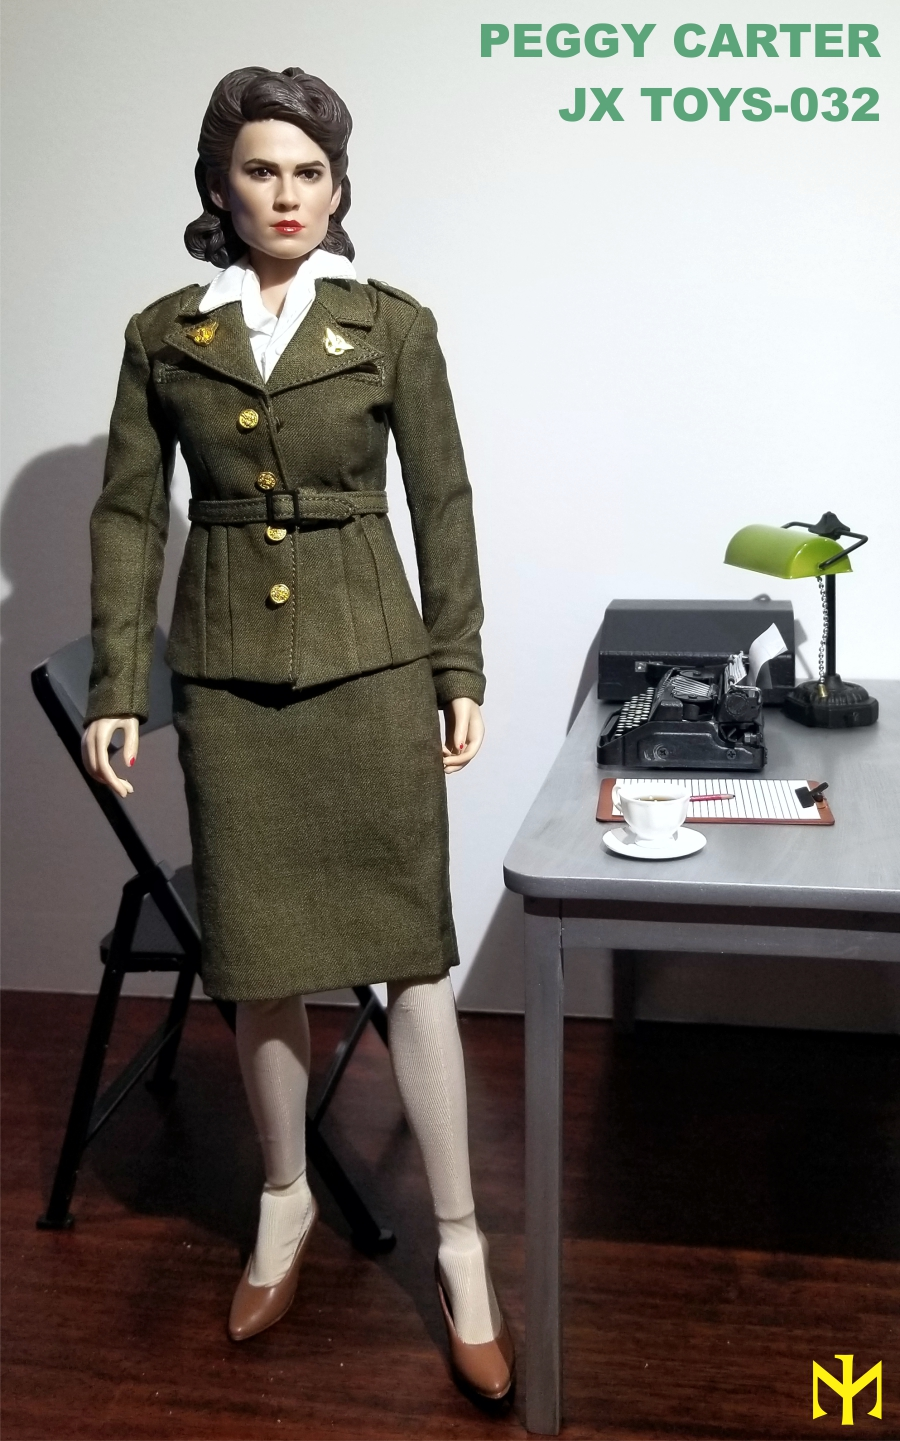 tv - Peggy Carter JX Toys Review and Photo Story Pcjxt010